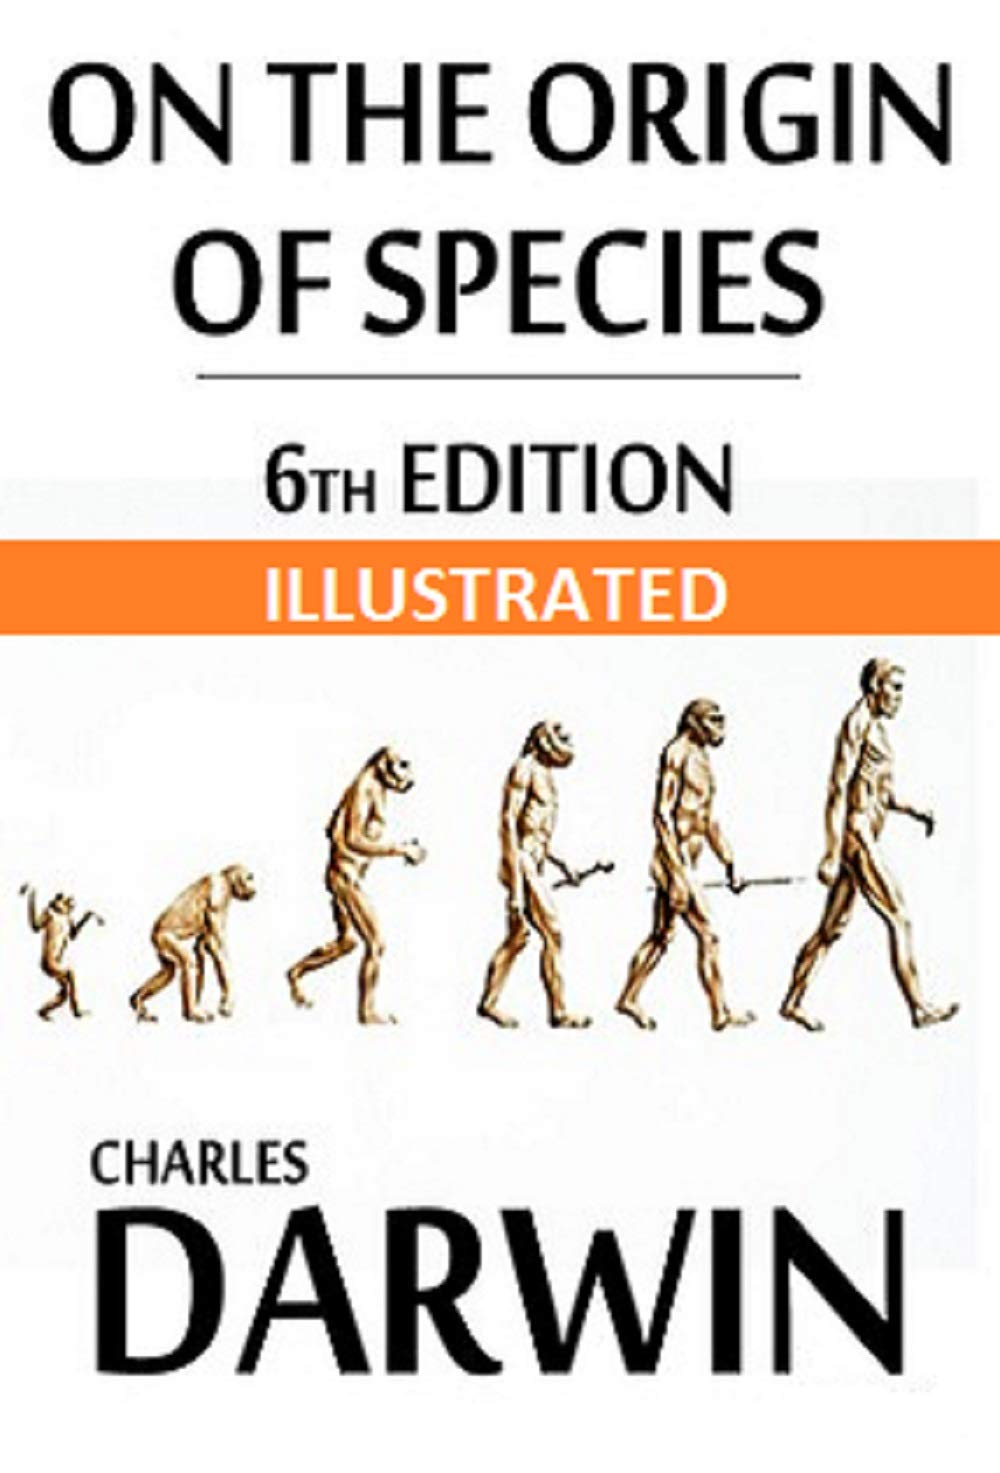 On the Origin of Species, 6th Edition Illustrated